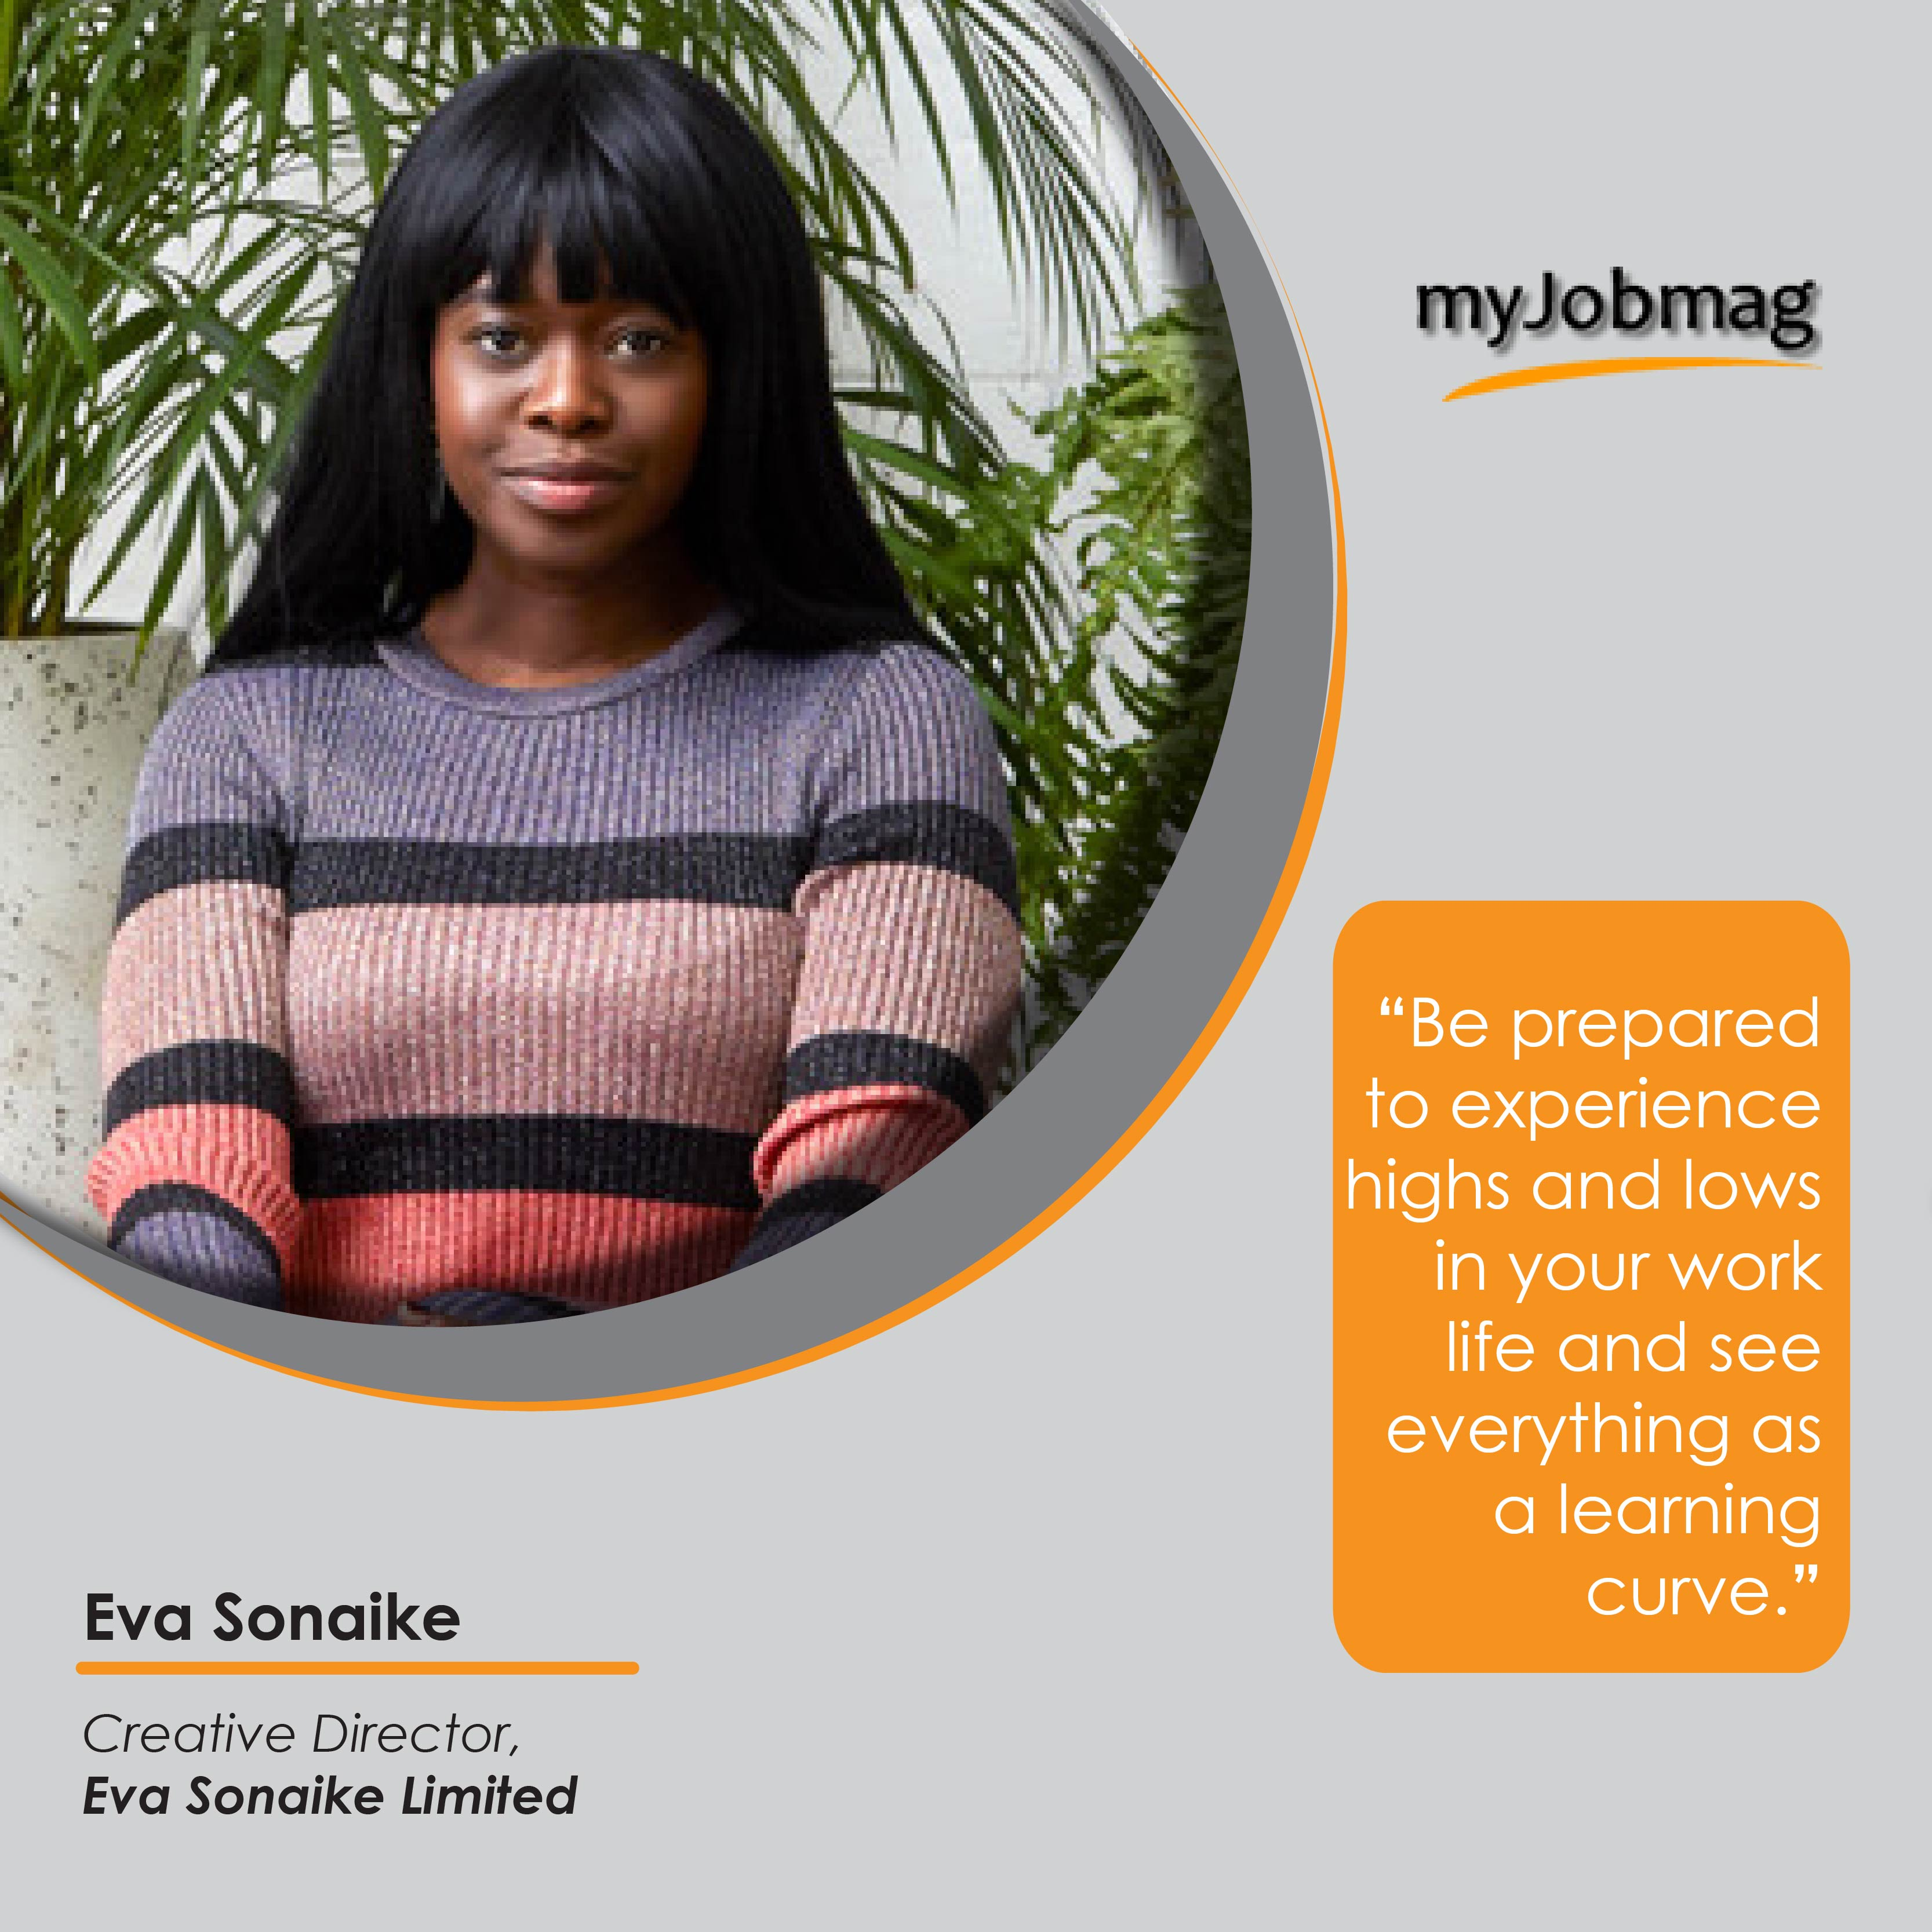 Eva Sonaike career advice MyJobMag